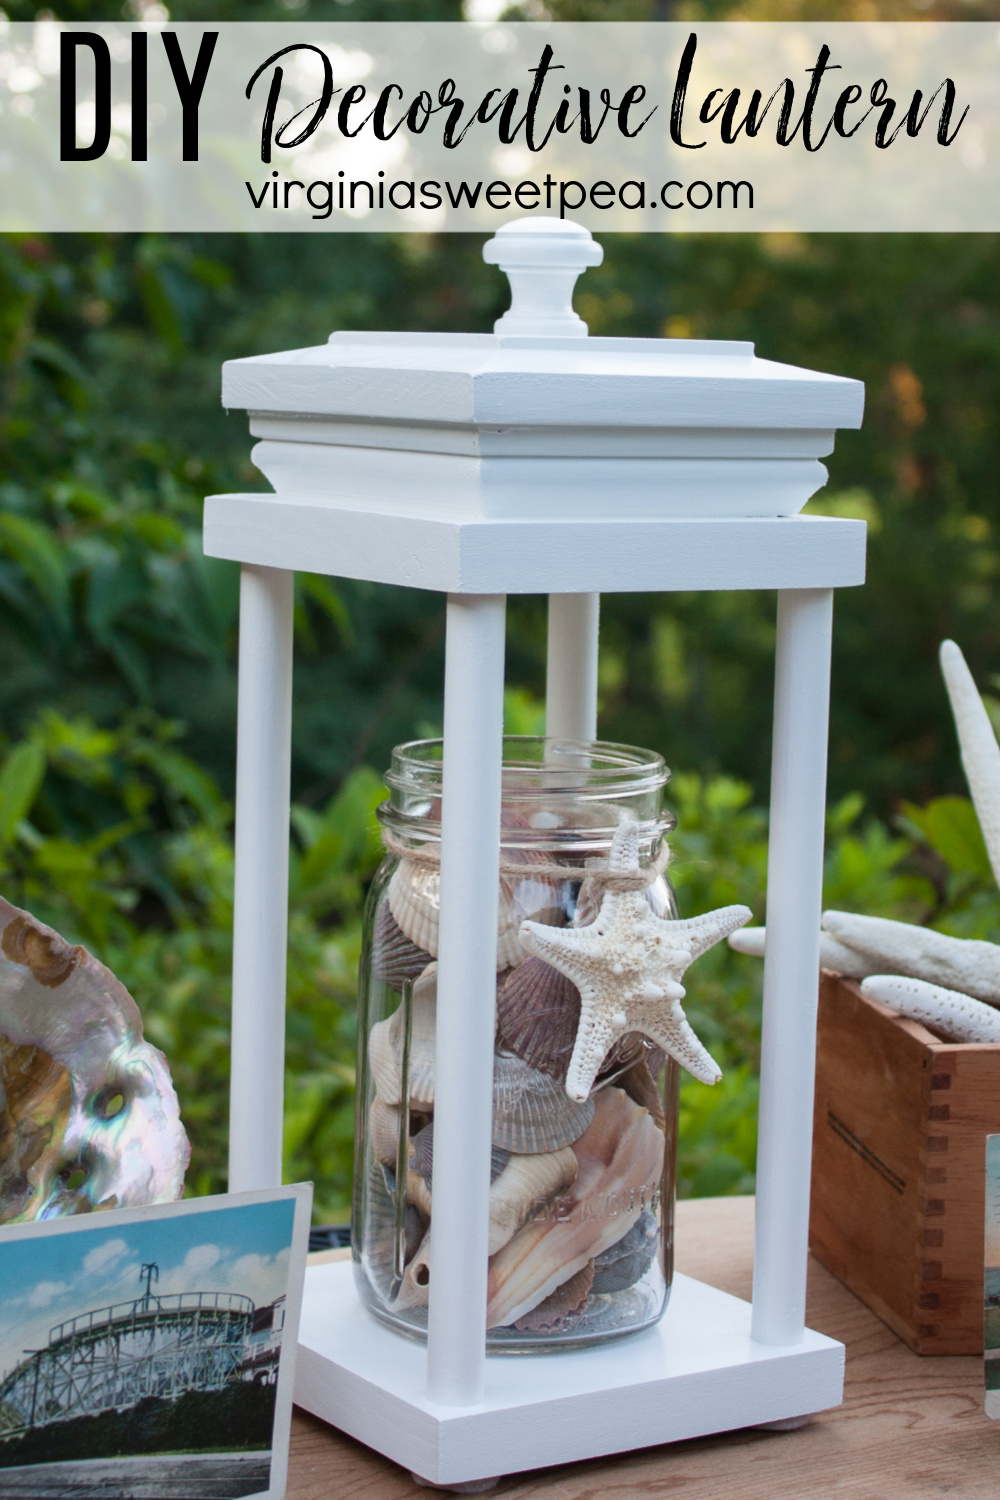 DIY Decorative Lantern - Learn how to make a lantern that can be used for decor in any season. This is an easy woodworking project. #diylantern #lantern #woodworking #howtomakealantern via @spaula